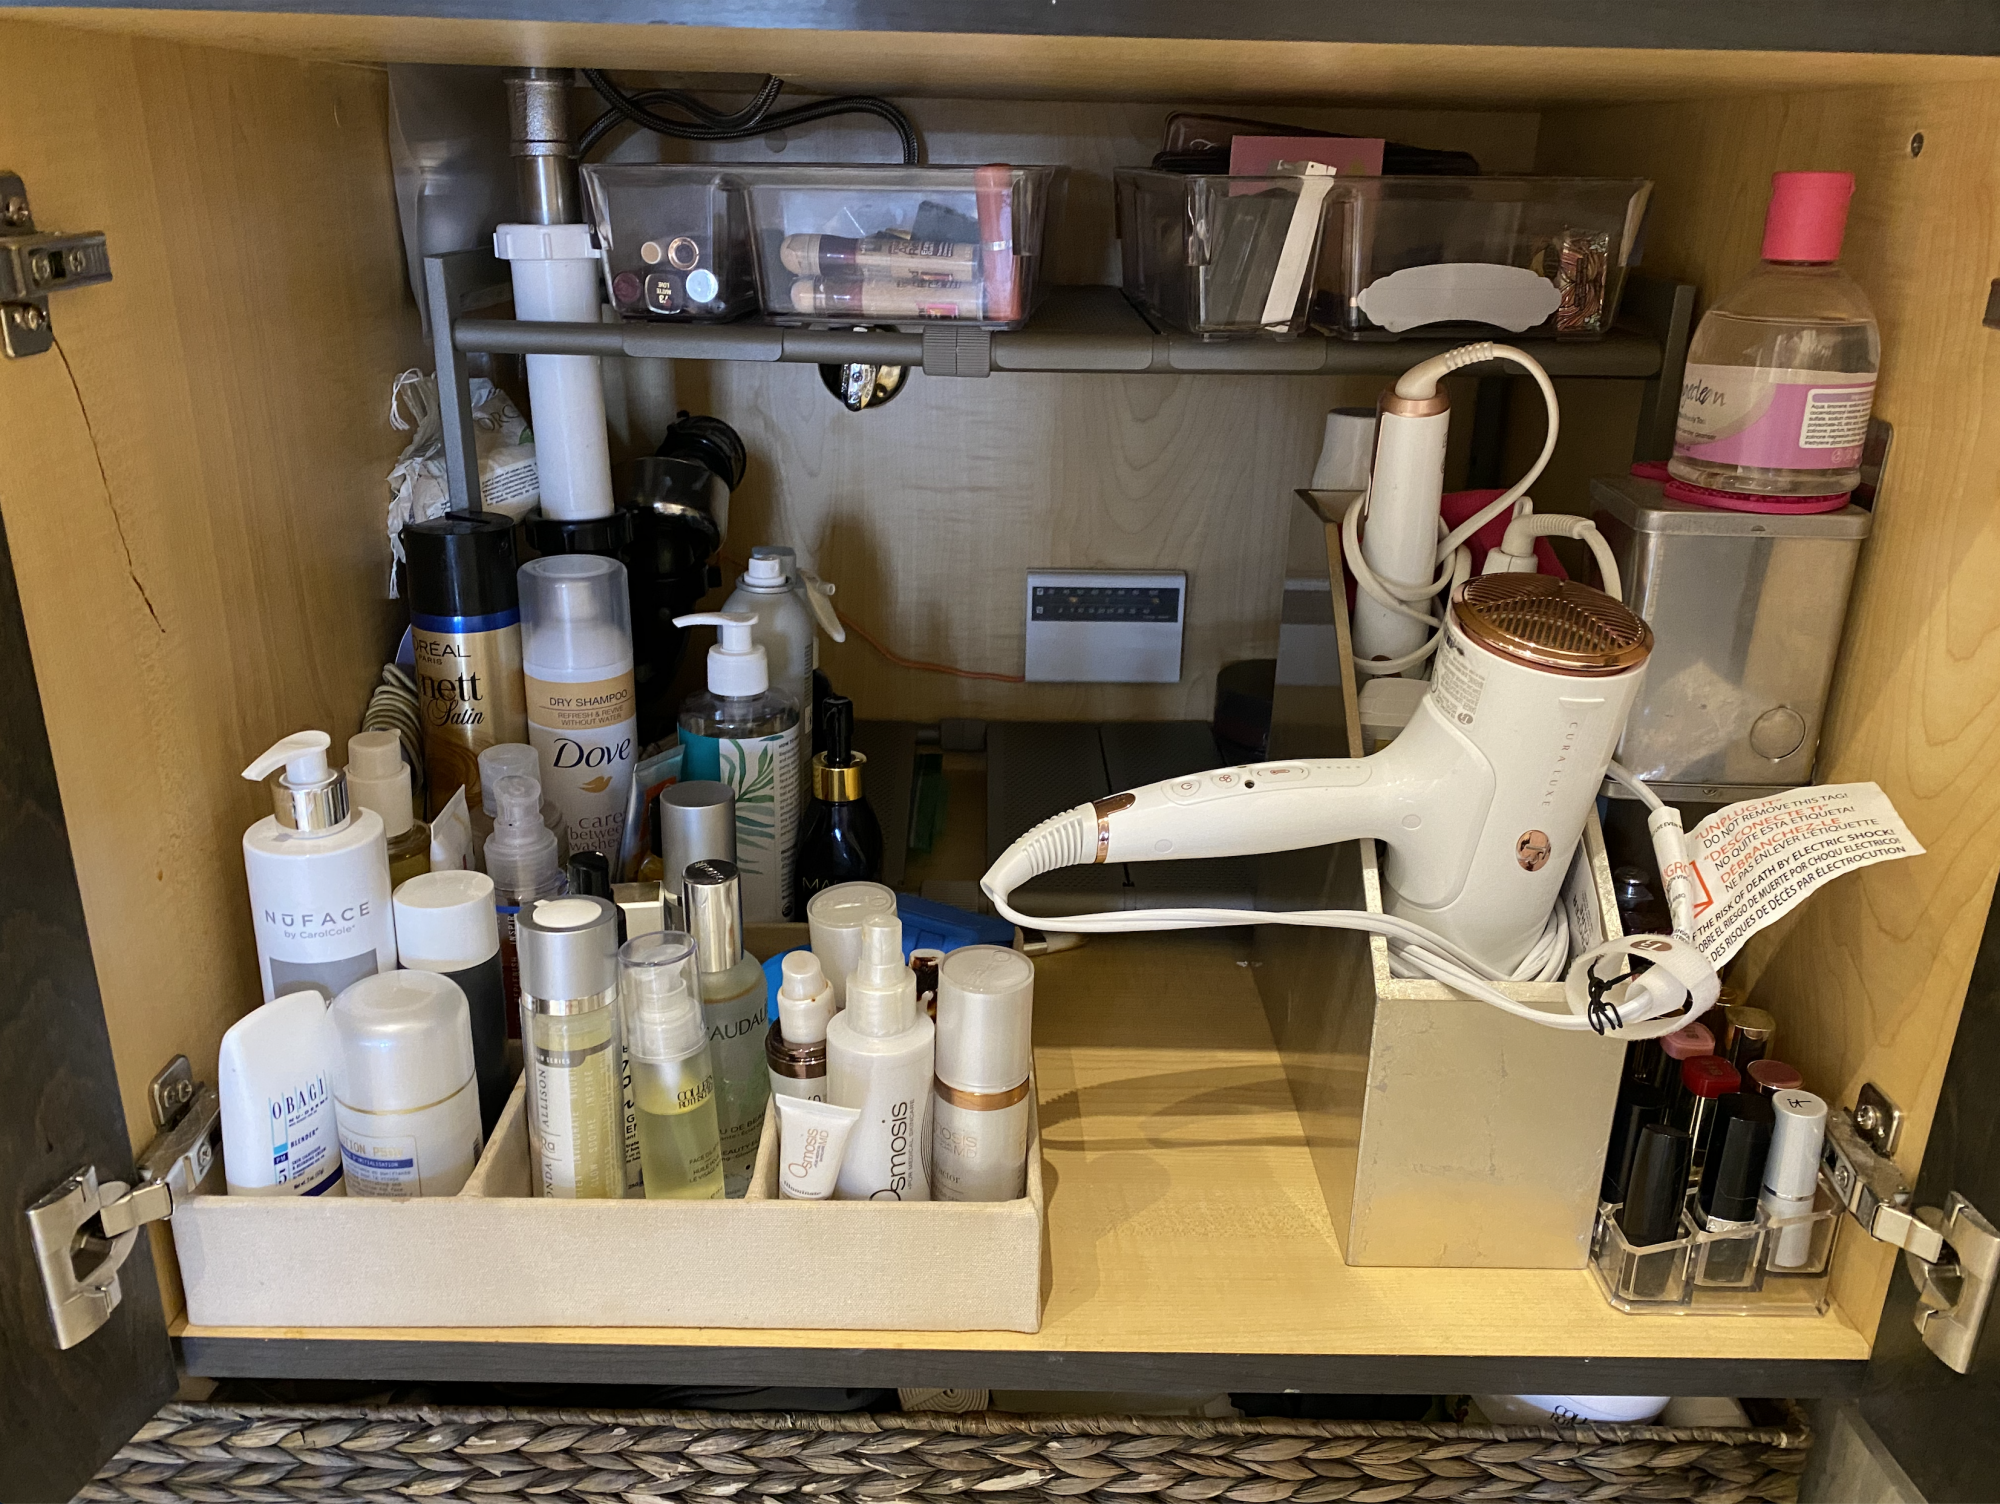 How To Organization Your beauty Products, Fashion blogger Erin Busbee of BusbeeStyle.com sharing how she organized her beauty, skincare, and haircare products in her bathroom in Telluride, Colorado